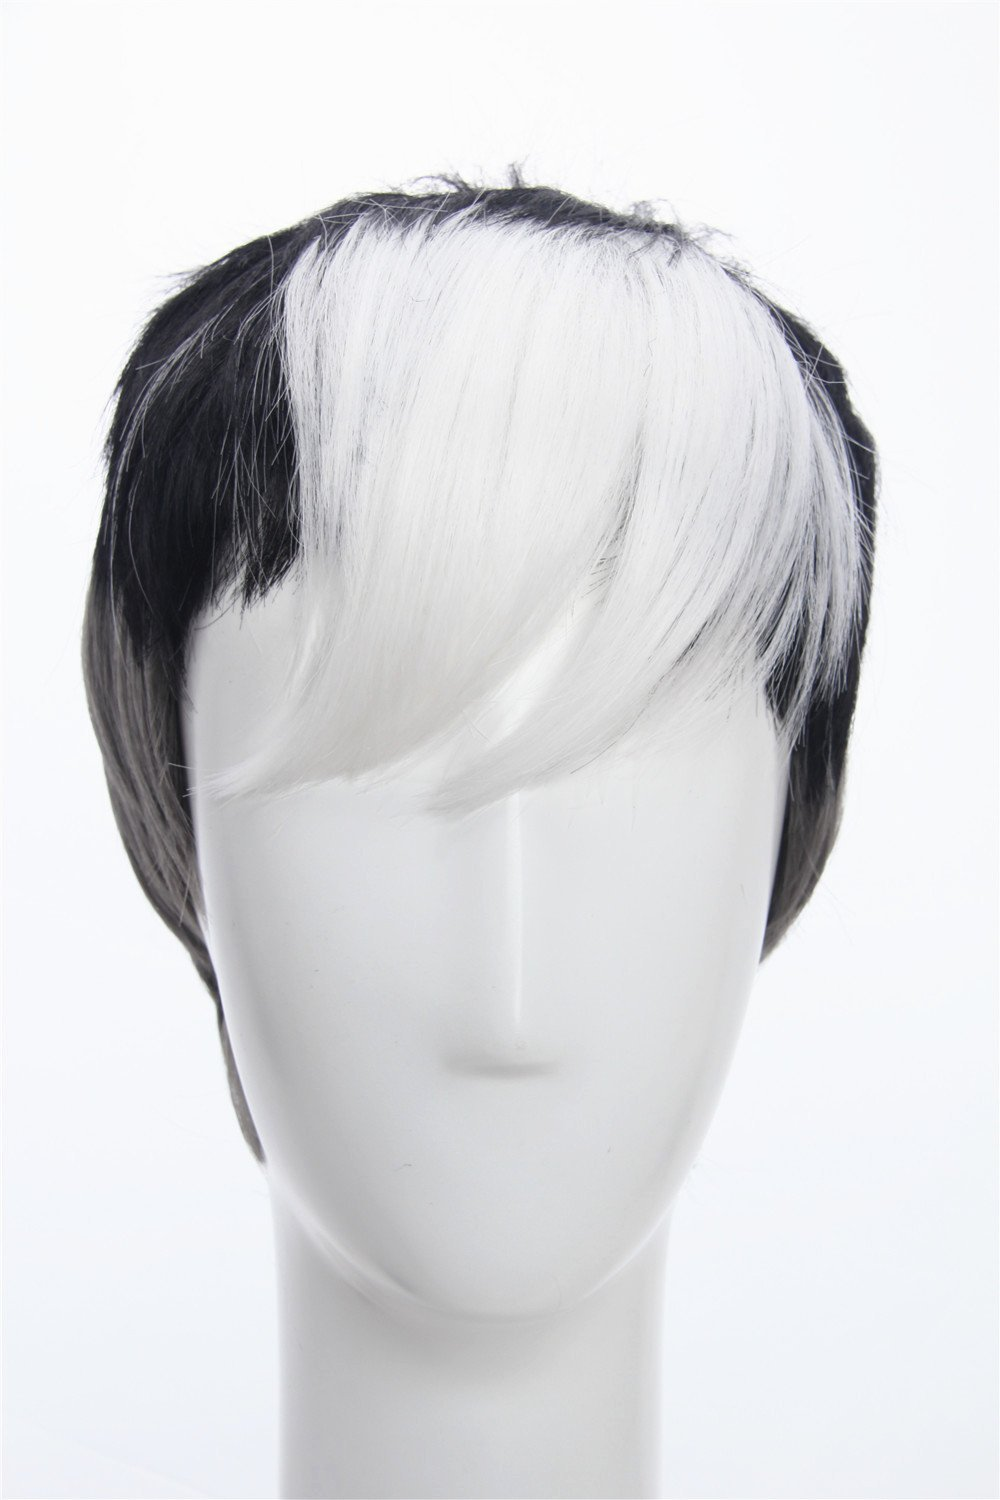 Weave Wigs- Voltron Shiro Wig Inspired by Legendary Defender Cosplay Gray Black White Tricolor Wig for Men Short Hair